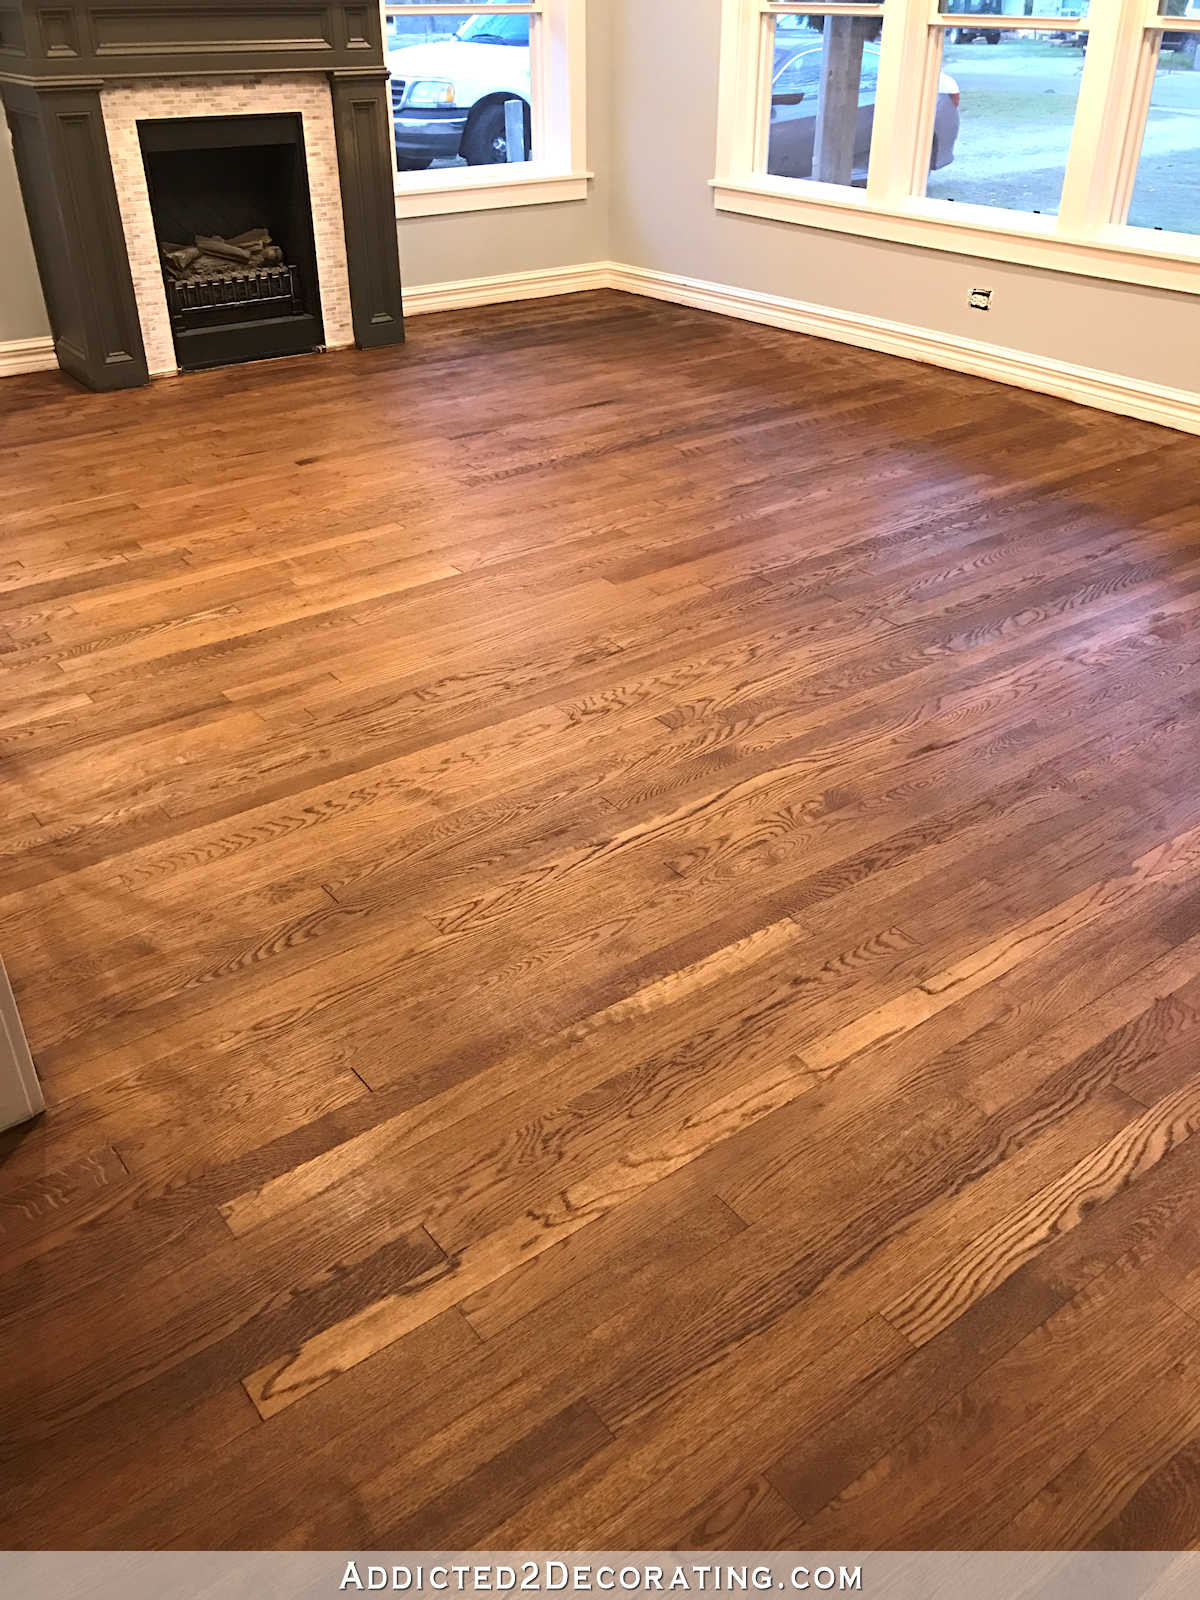 popular hardwood floor colors 2017 of adventures in staining my red oak hardwood floors products process in staining red oak hardwood floors 8a living room and entryway